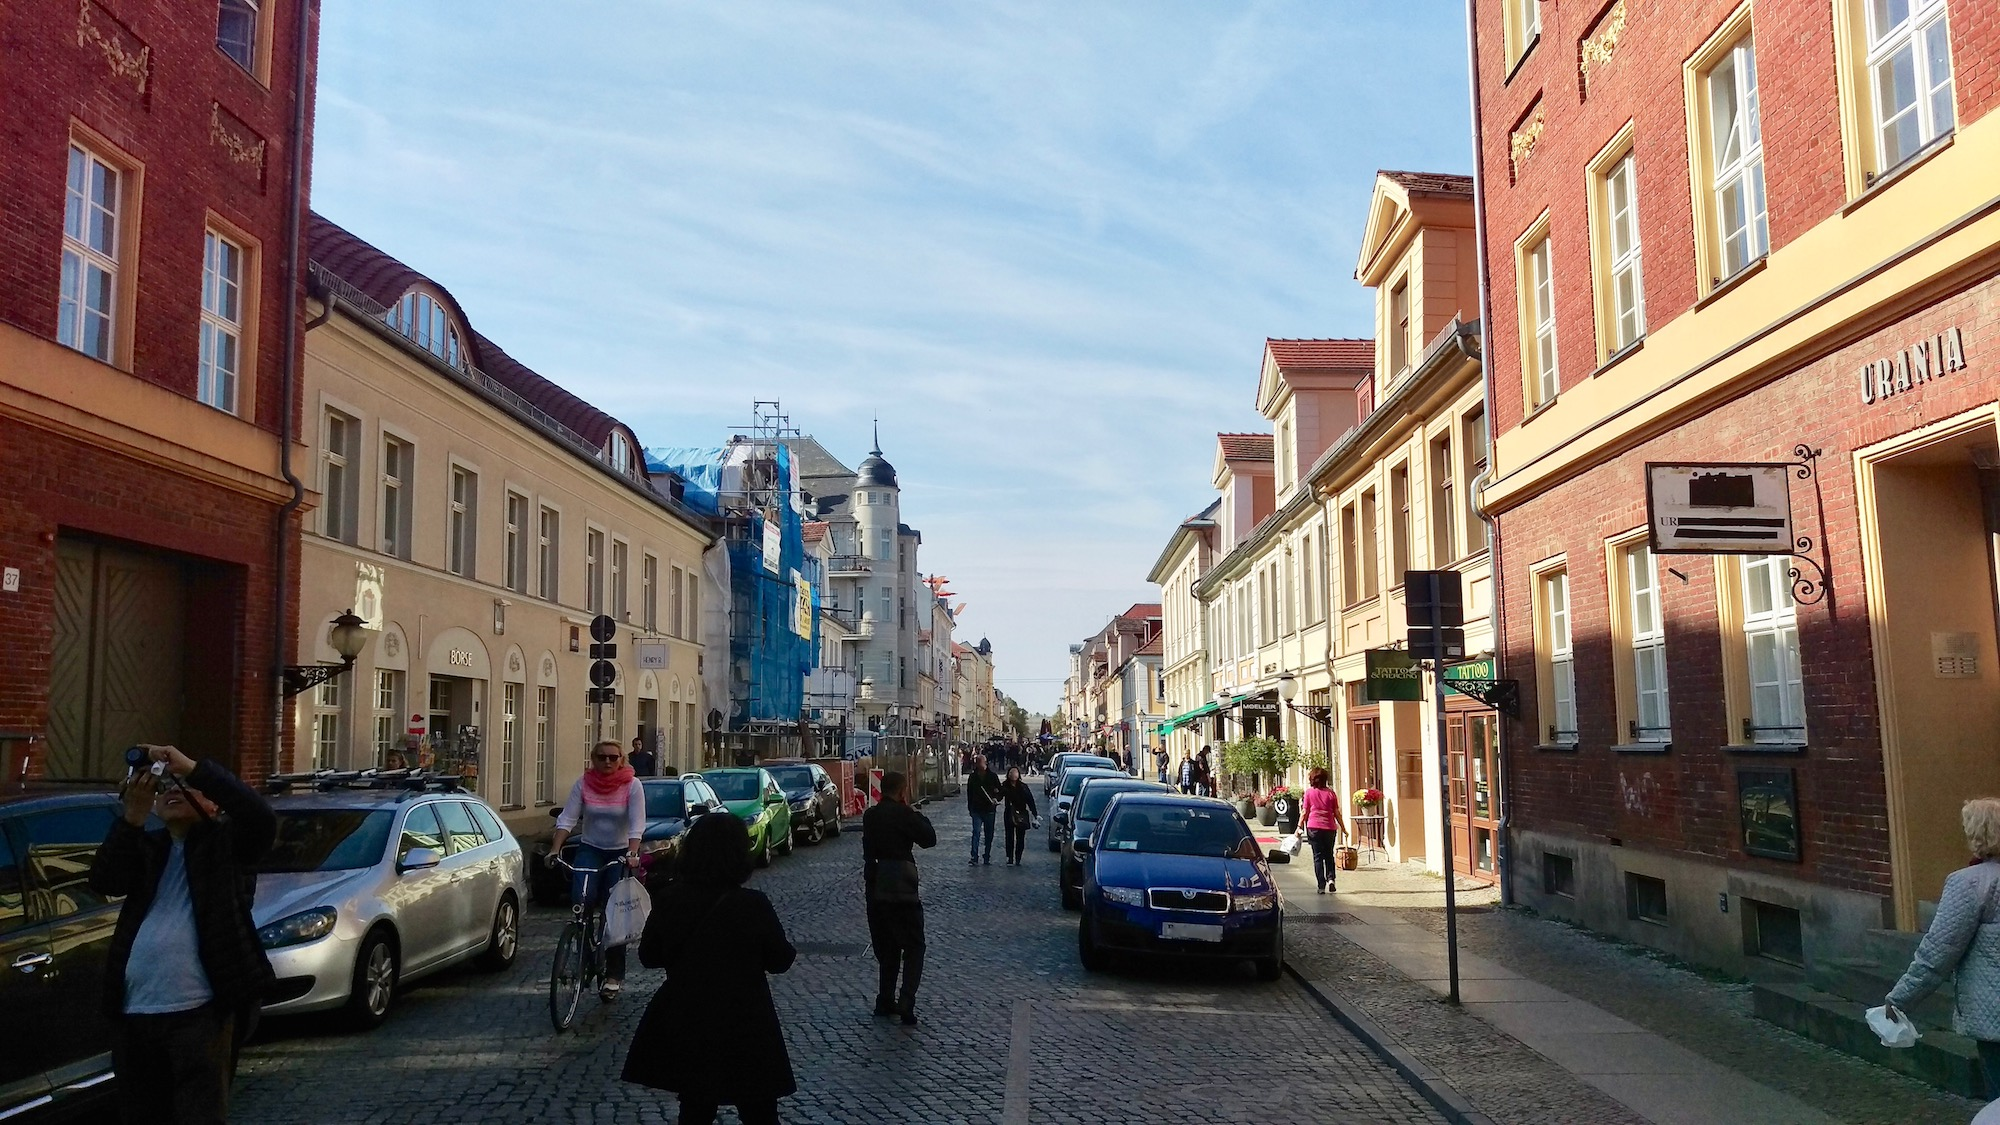 Brandenburger street is one of the most active streets in Potsdam.